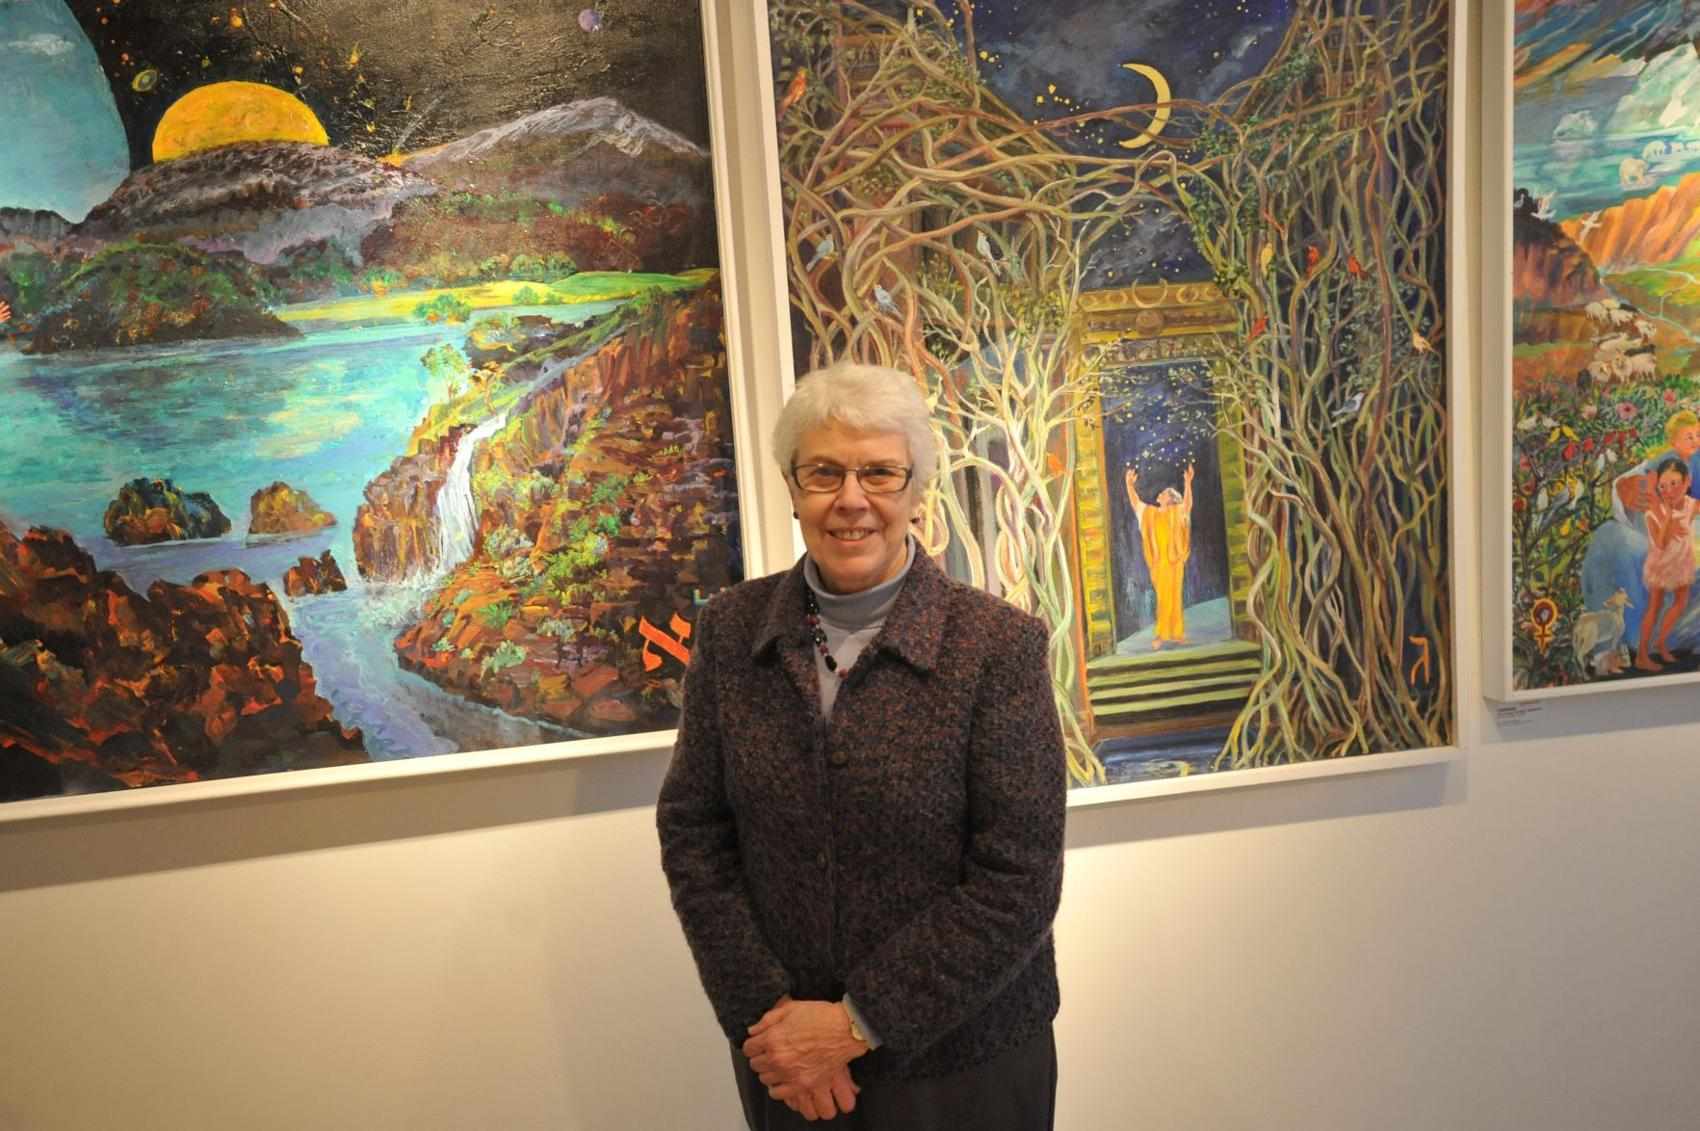 Sister Rosemarie Greco is retiring from Wisdom House after 27 years as executive director of the interfaith center in Litchfield. Here she stands in the Mary Louise Tritchet Gallery, a space she helped establish to bring artists into the center.